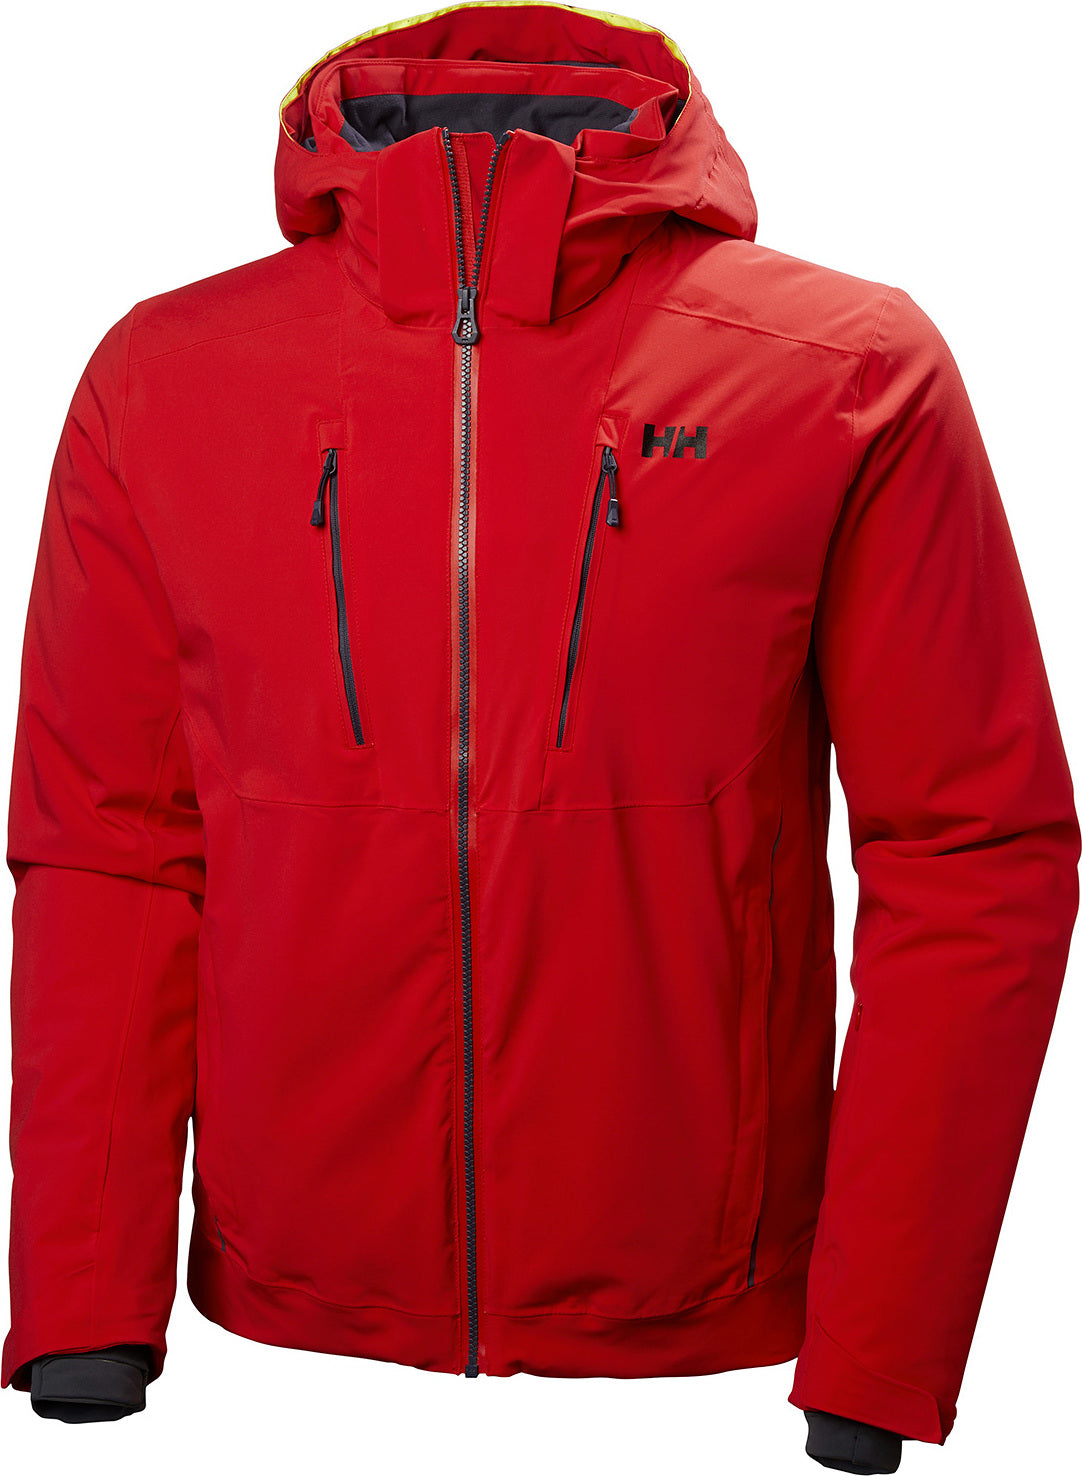 793031b3fb Helly Hansen Men s Alpha 3.0 Insulated Jacket